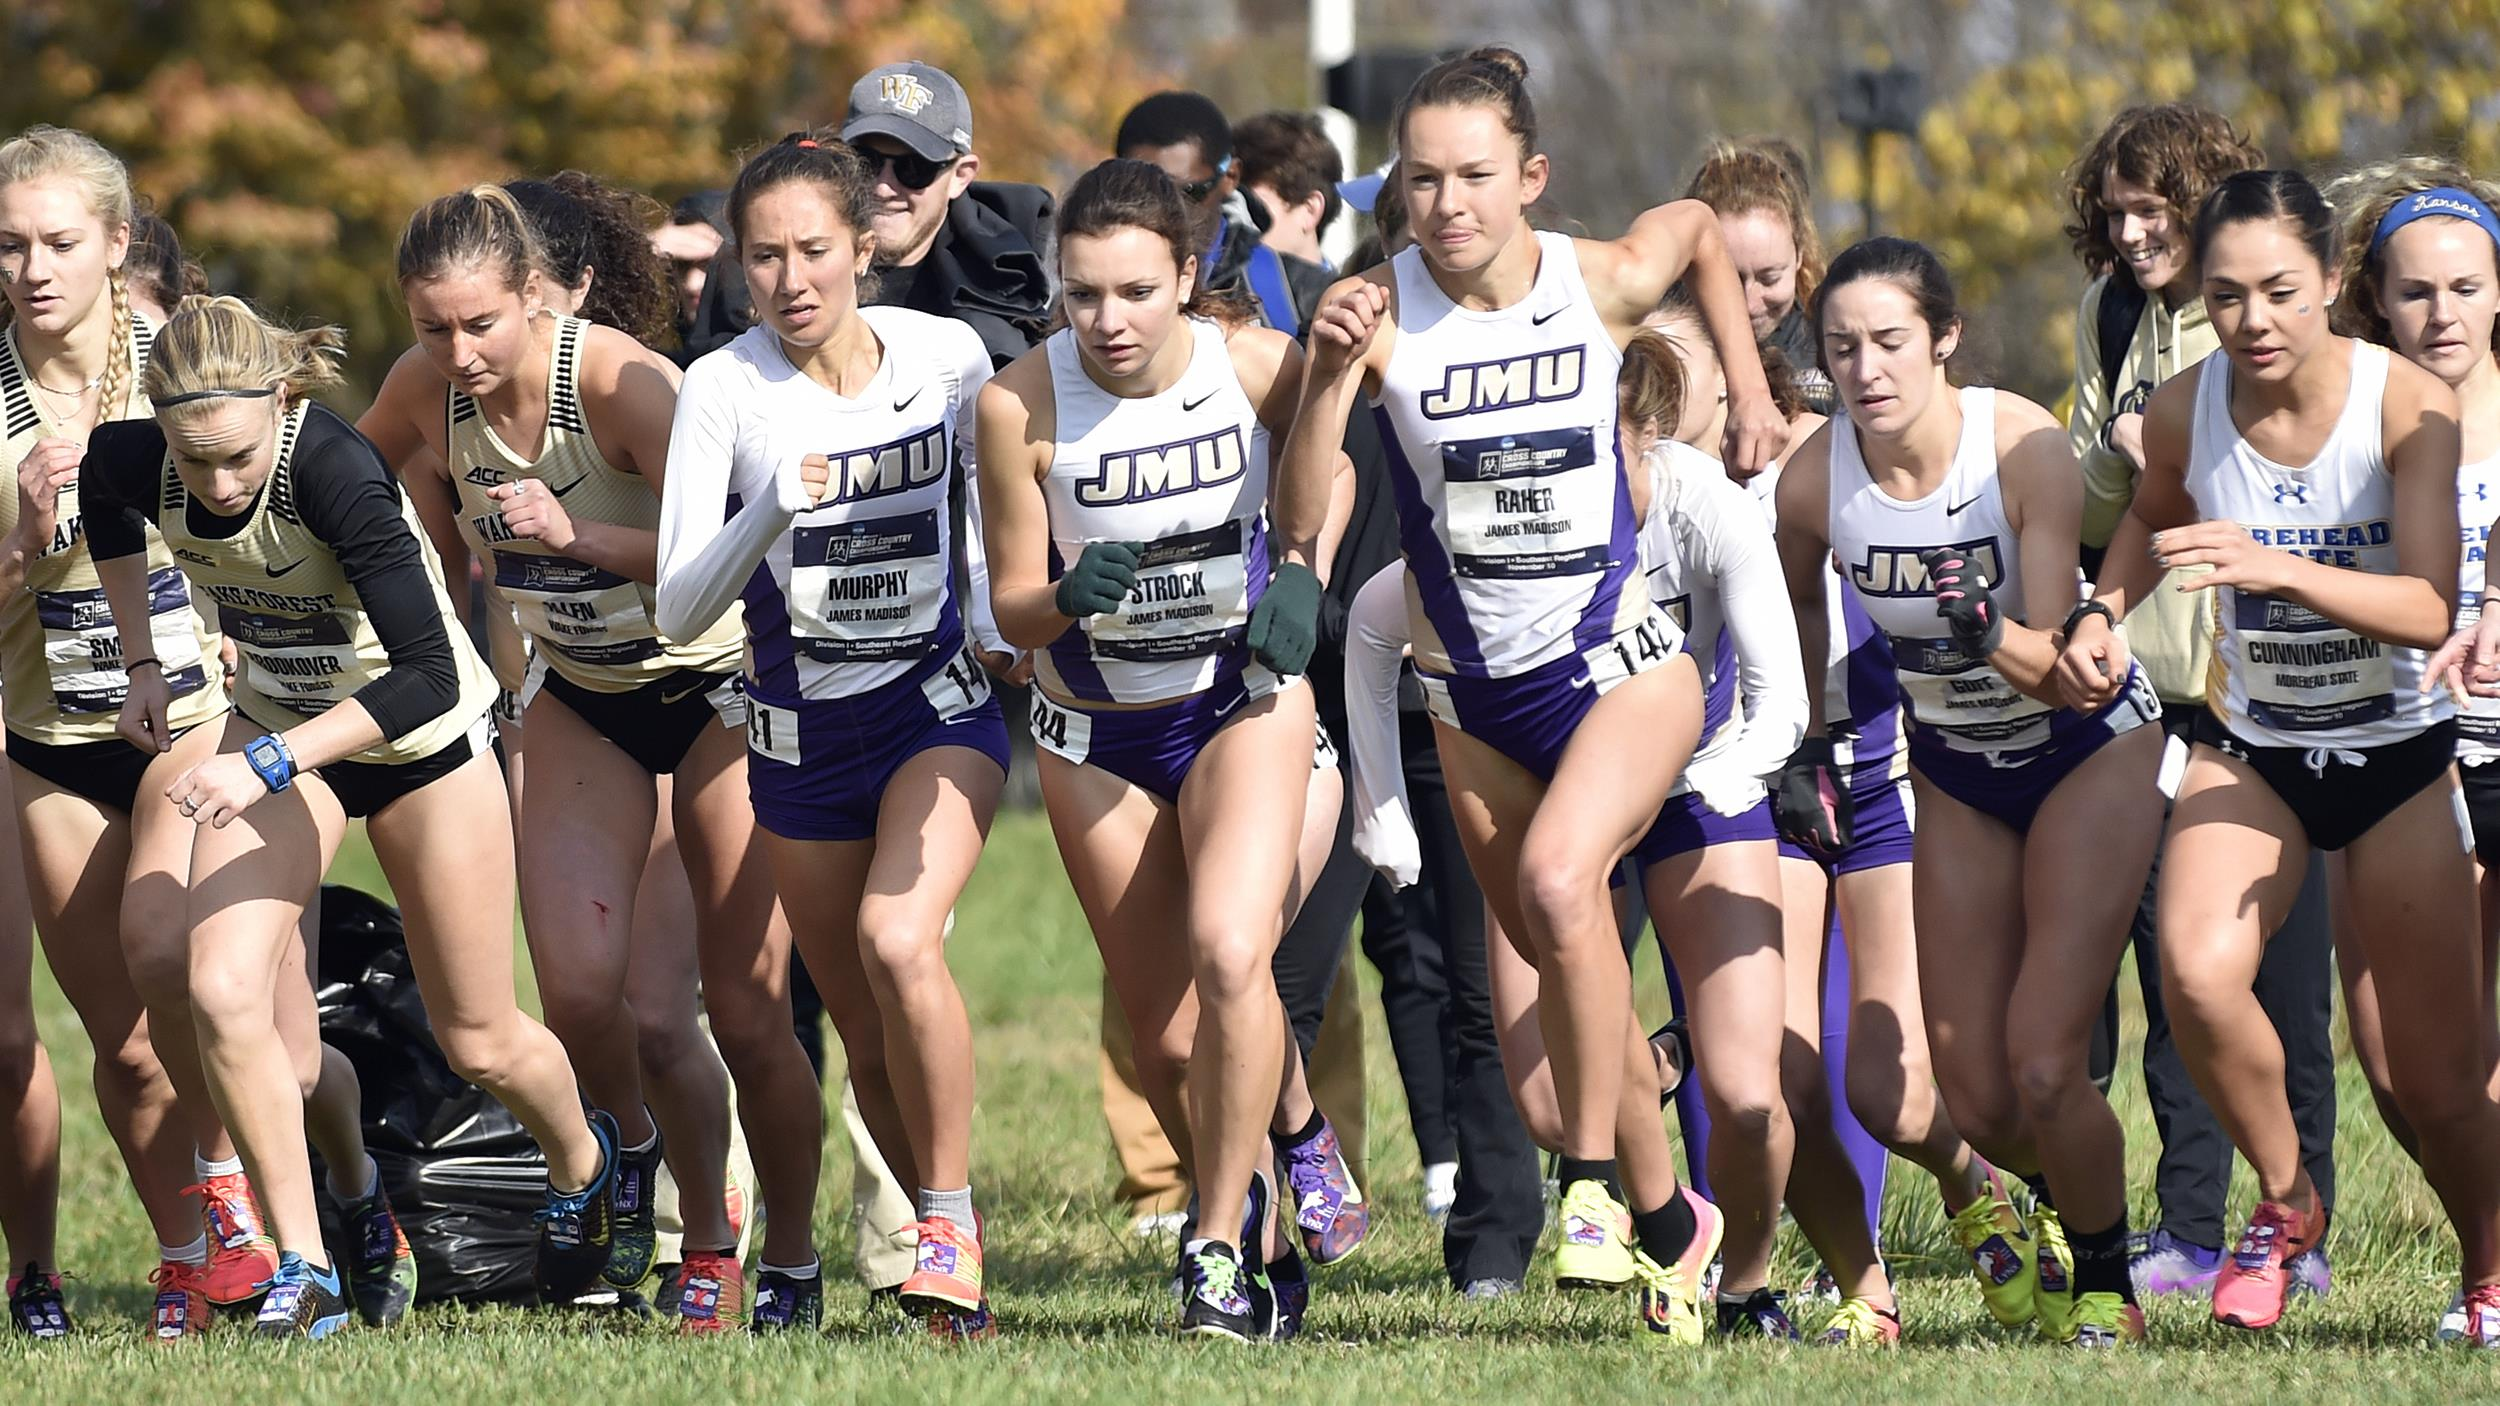 Women's Cross Country: Dukes Win ECAC Championship For Second Consecutive Year